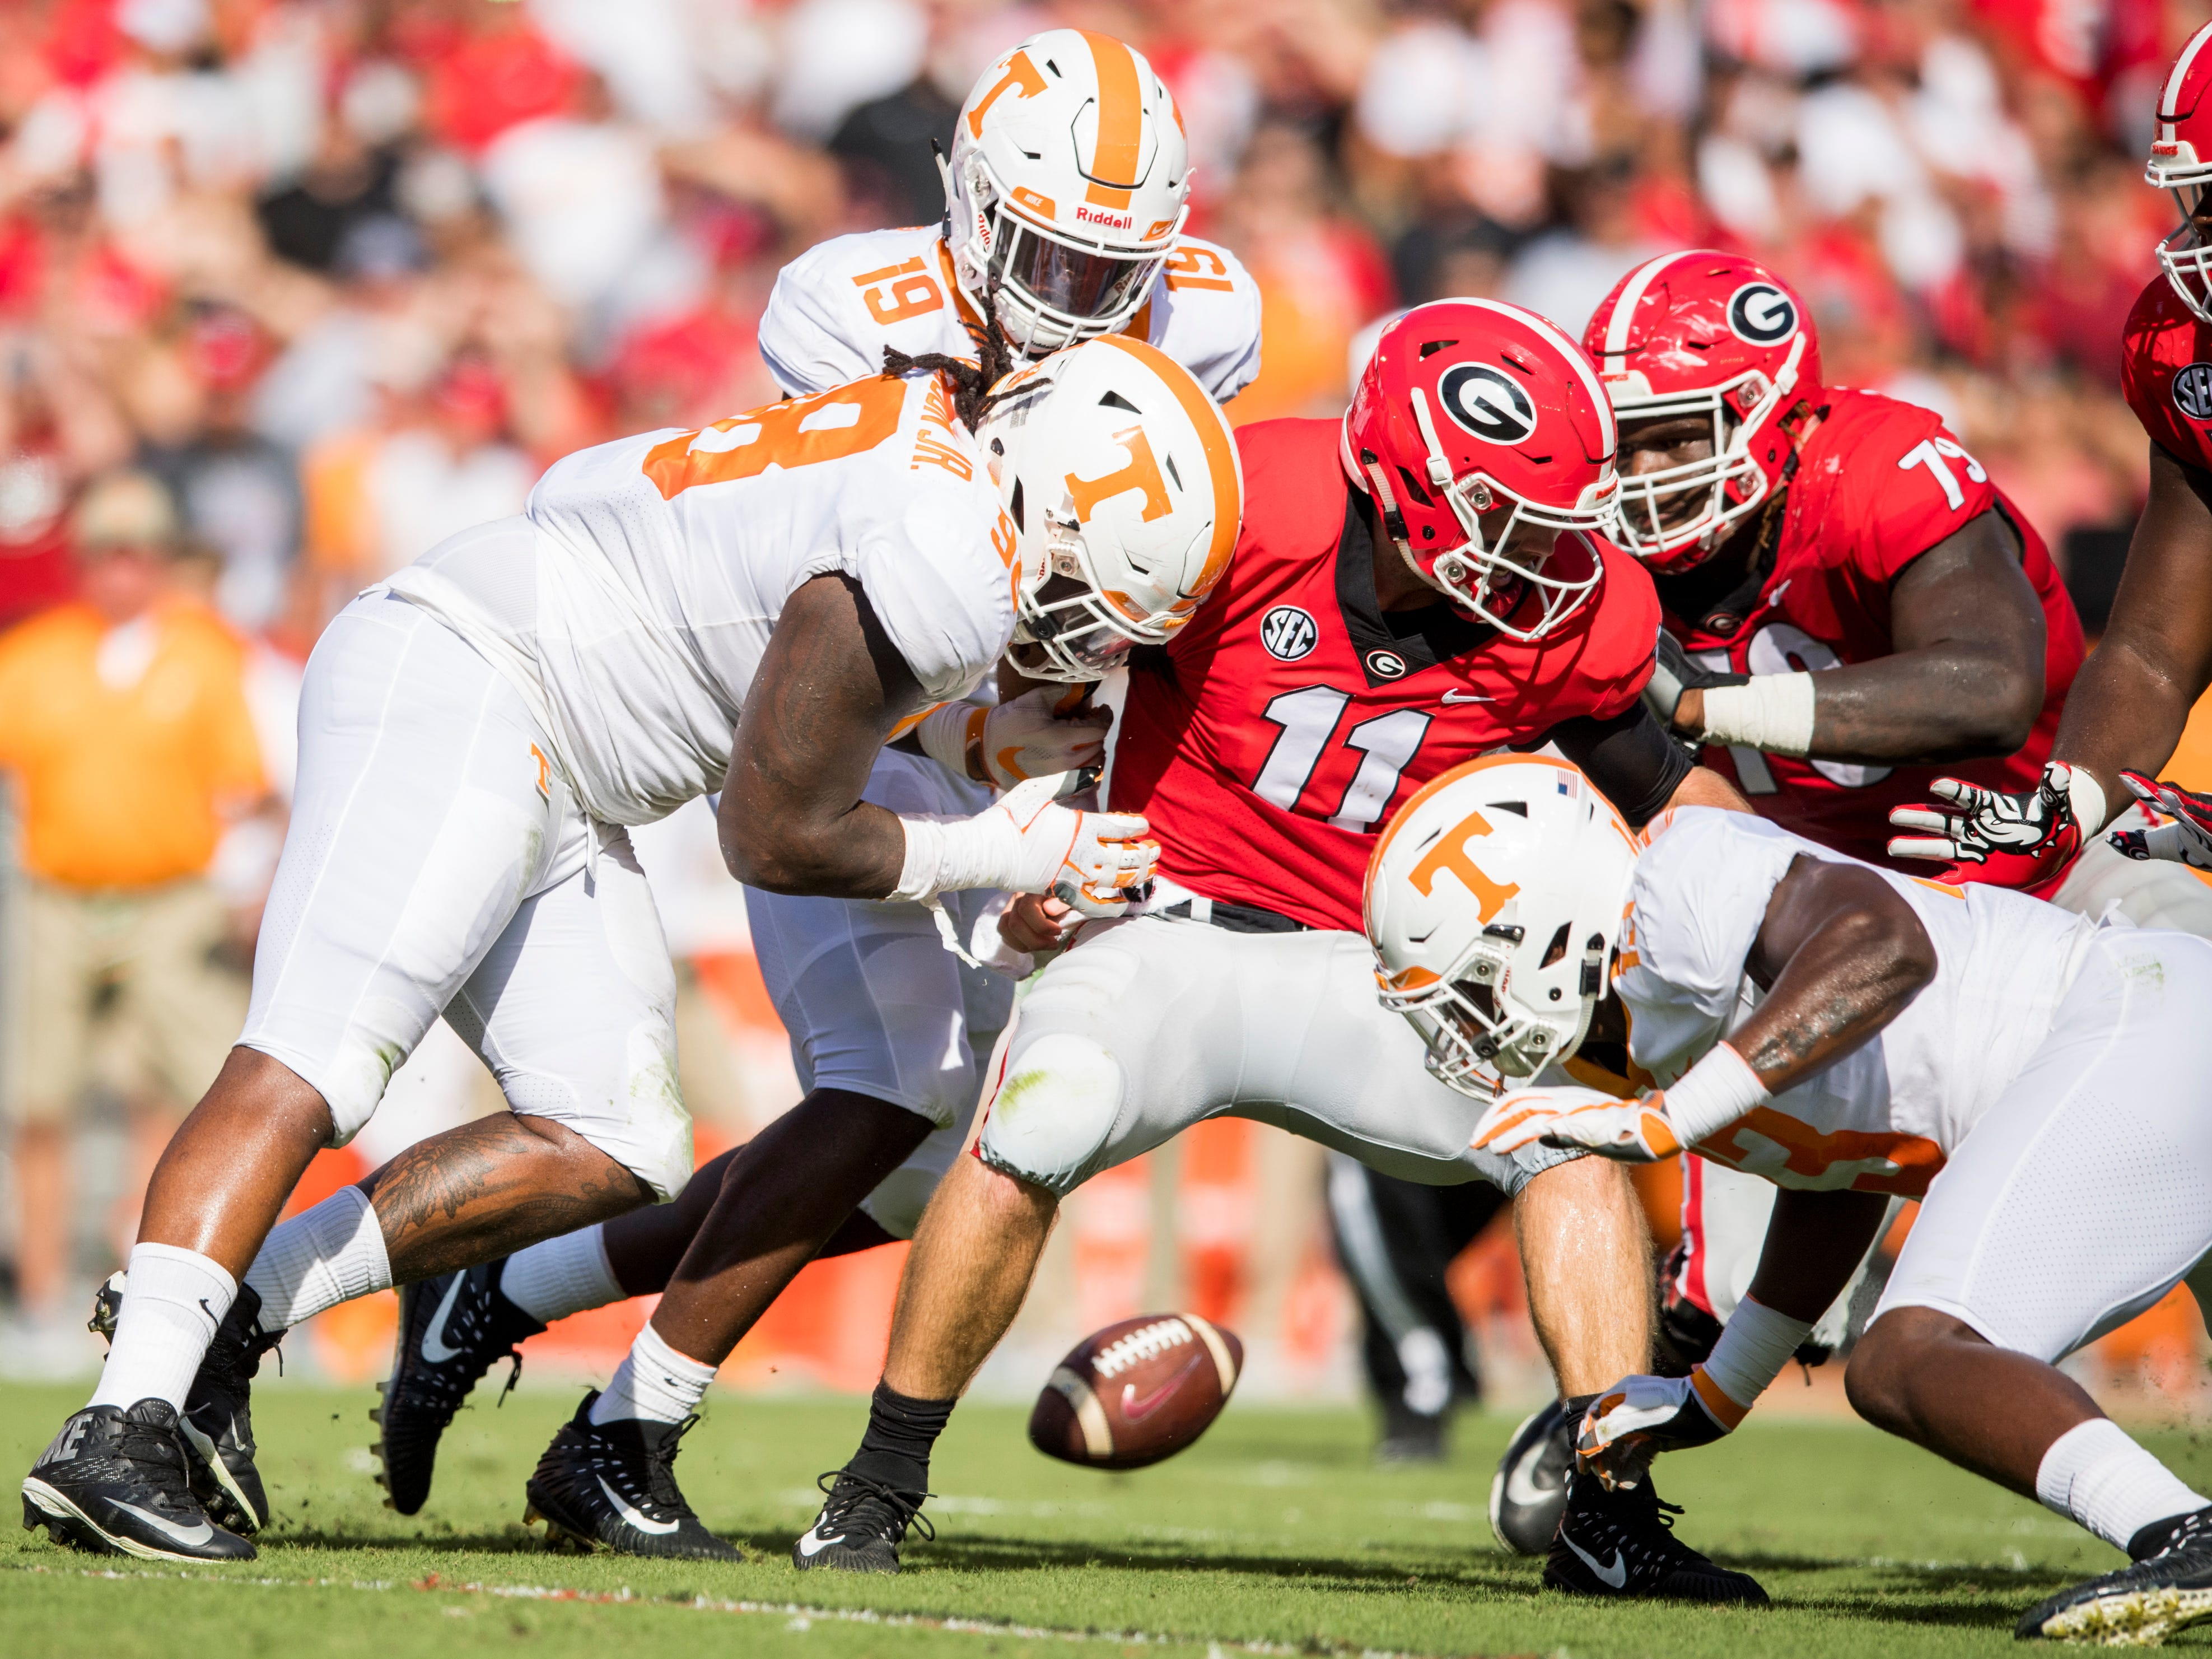 Georgia quarterback Jake Fromm (11) fumbles the ball during the Tennessee Volunteers' game against Georgia in Sanford Stadium in Athens, Ga., on Saturday, Sept. 29, 2018.